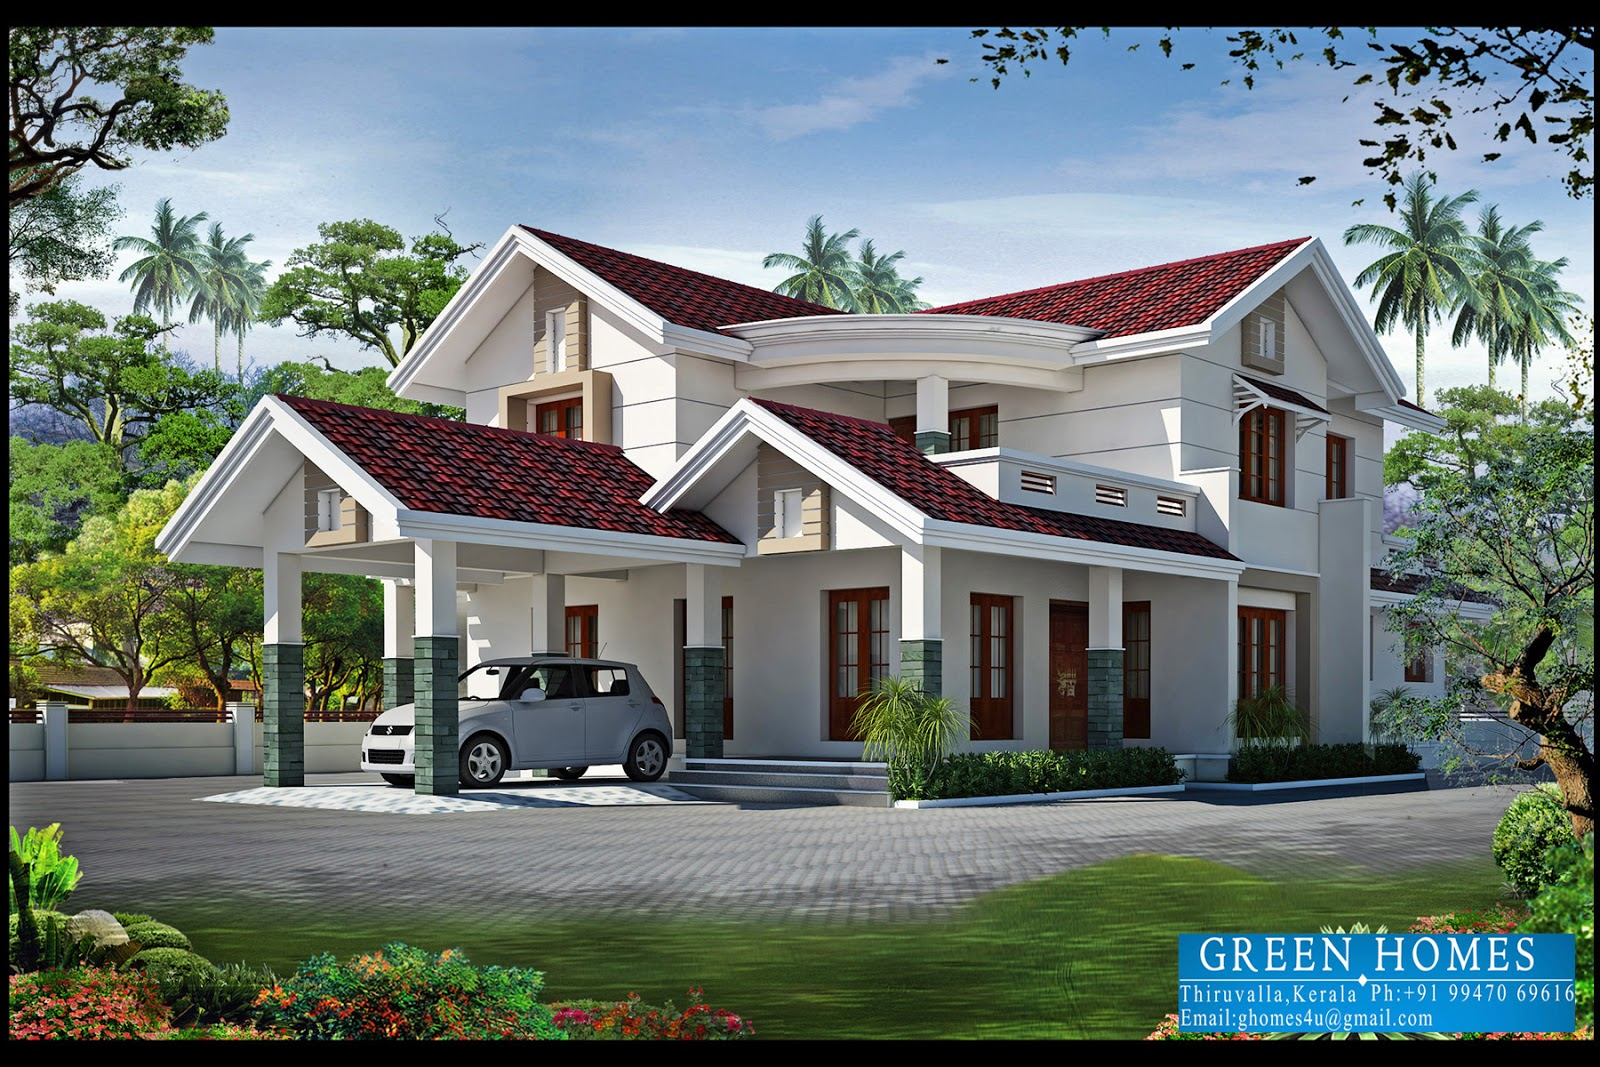 green homes 4bhk kerala home design 2550. Black Bedroom Furniture Sets. Home Design Ideas